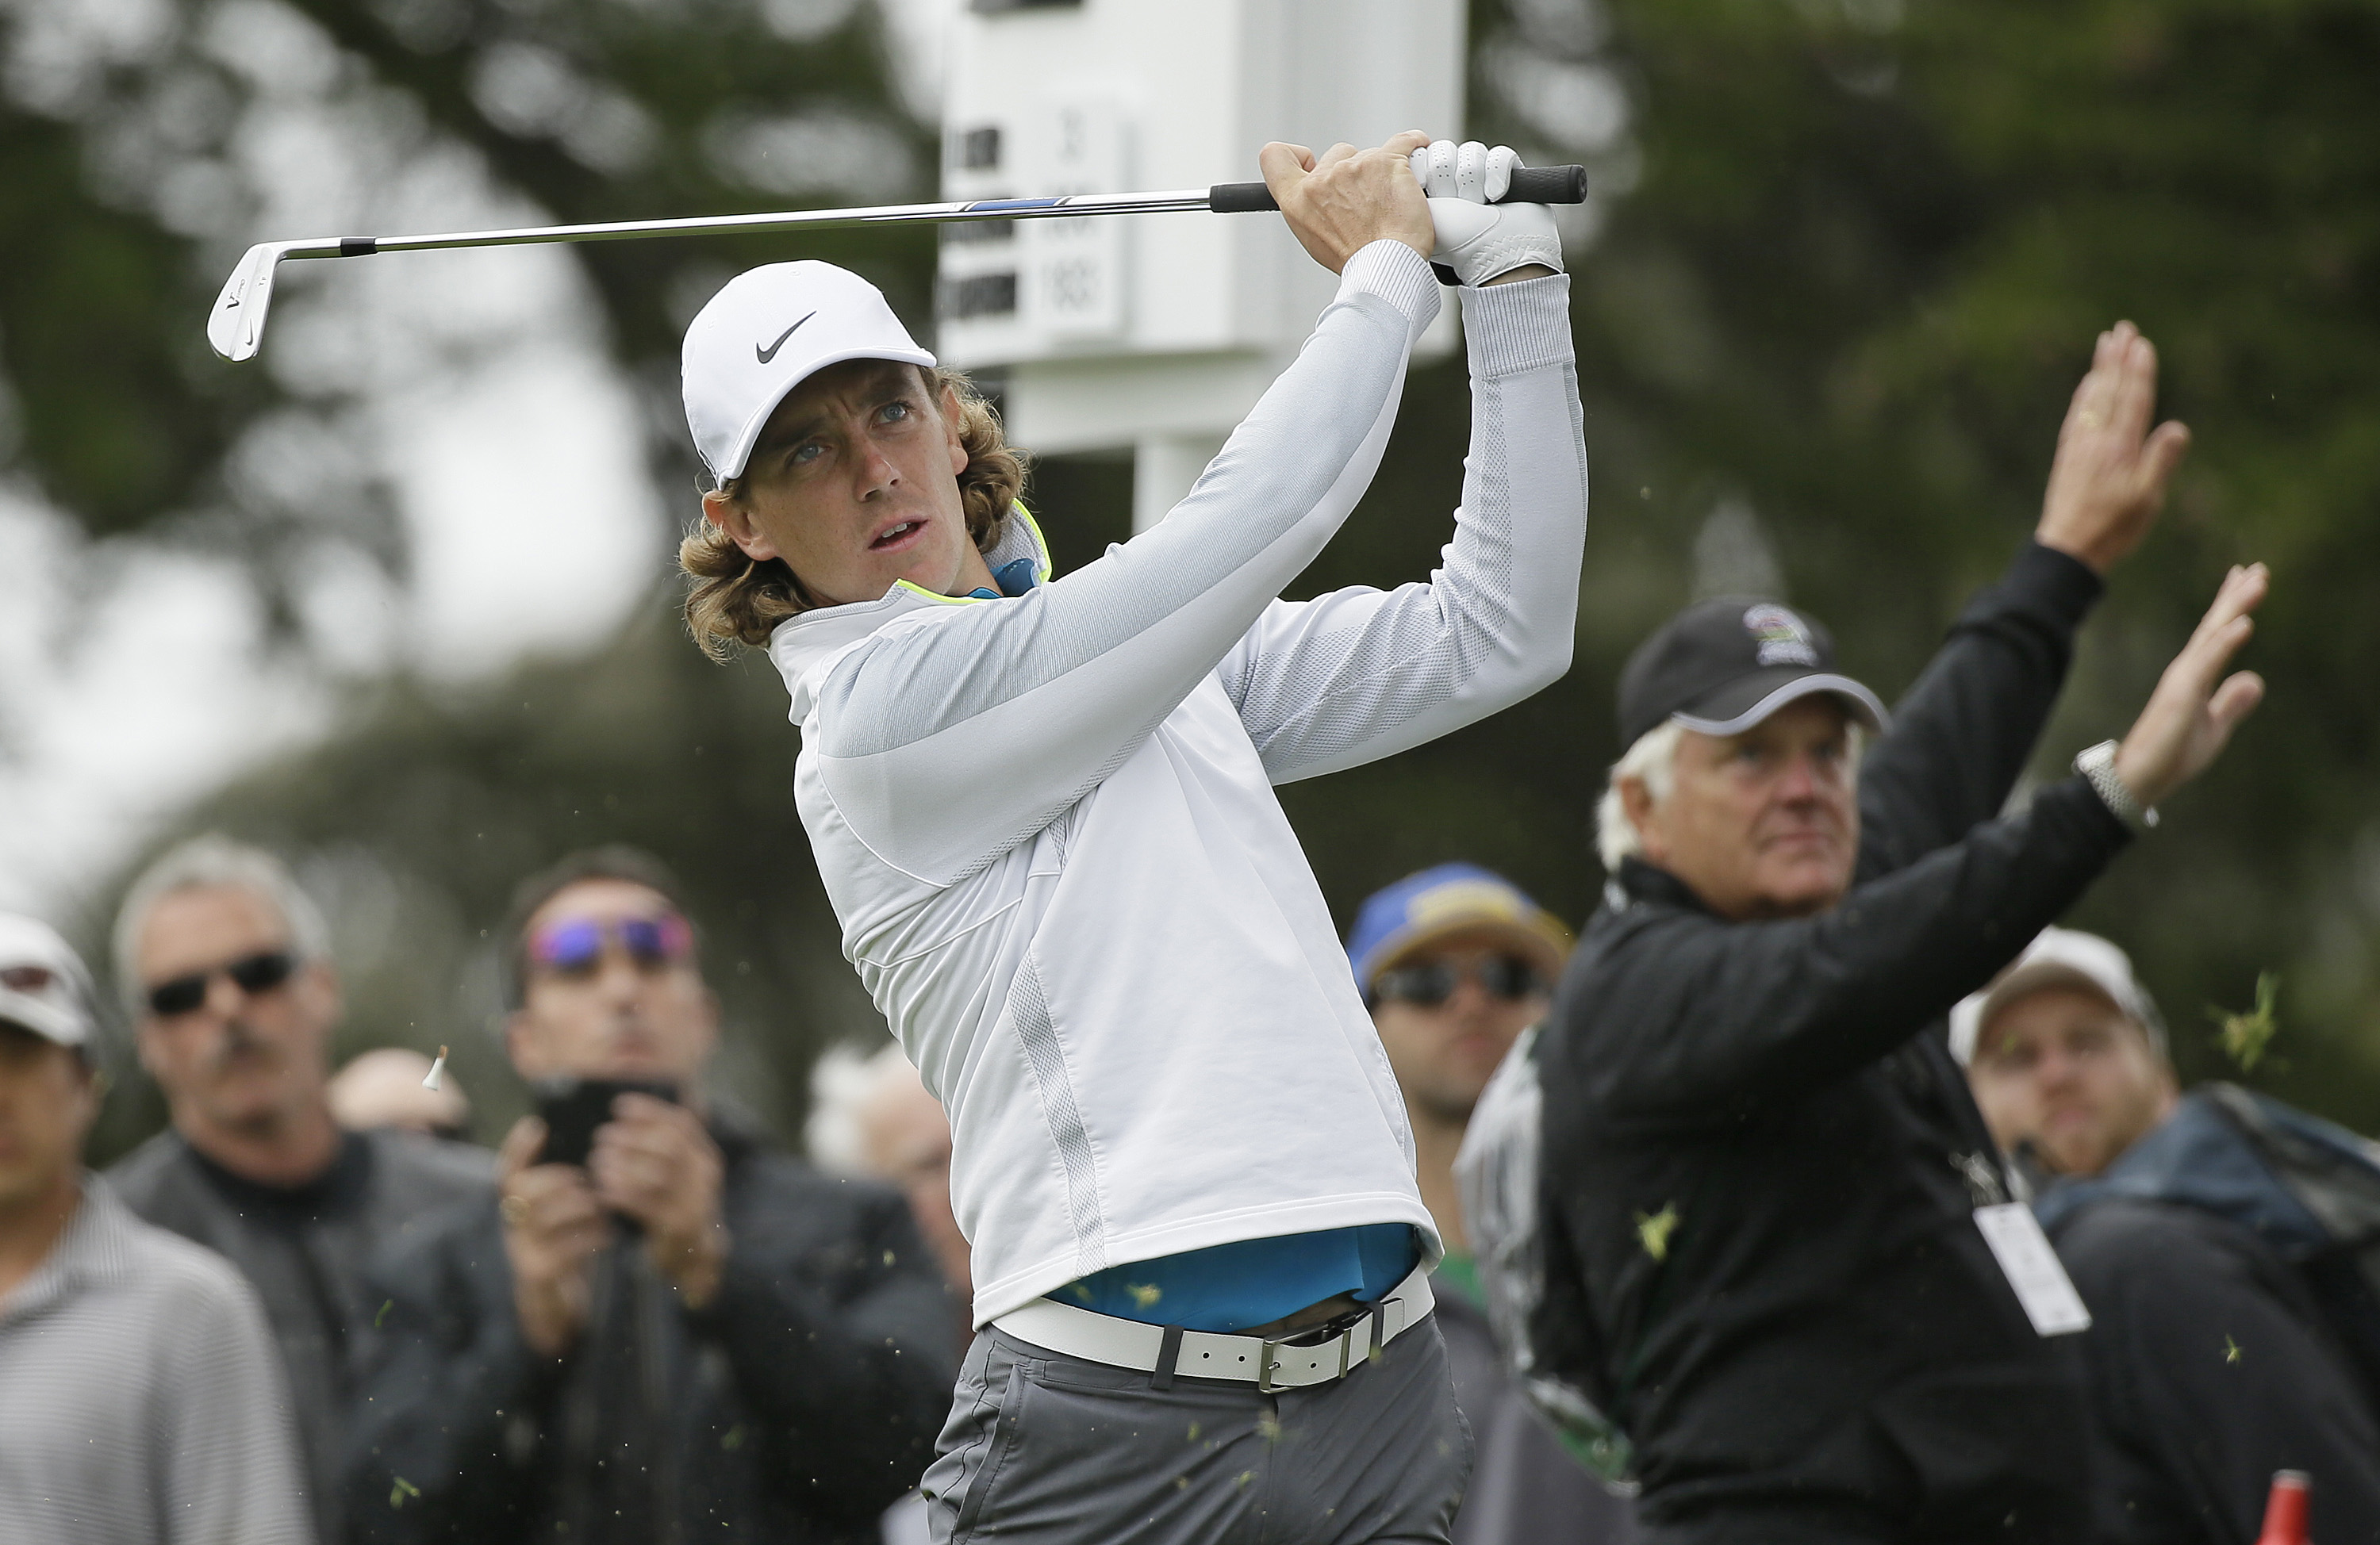 Tommy Fleetwood, of England, hits from the second tee of TPC Harding Park against Danny Willett, of England, in the quarterfinals of the Match Play Championship golf tournament Saturday, May 2, 2015, in San Francisco. (AP Photo/Eric Risberg)